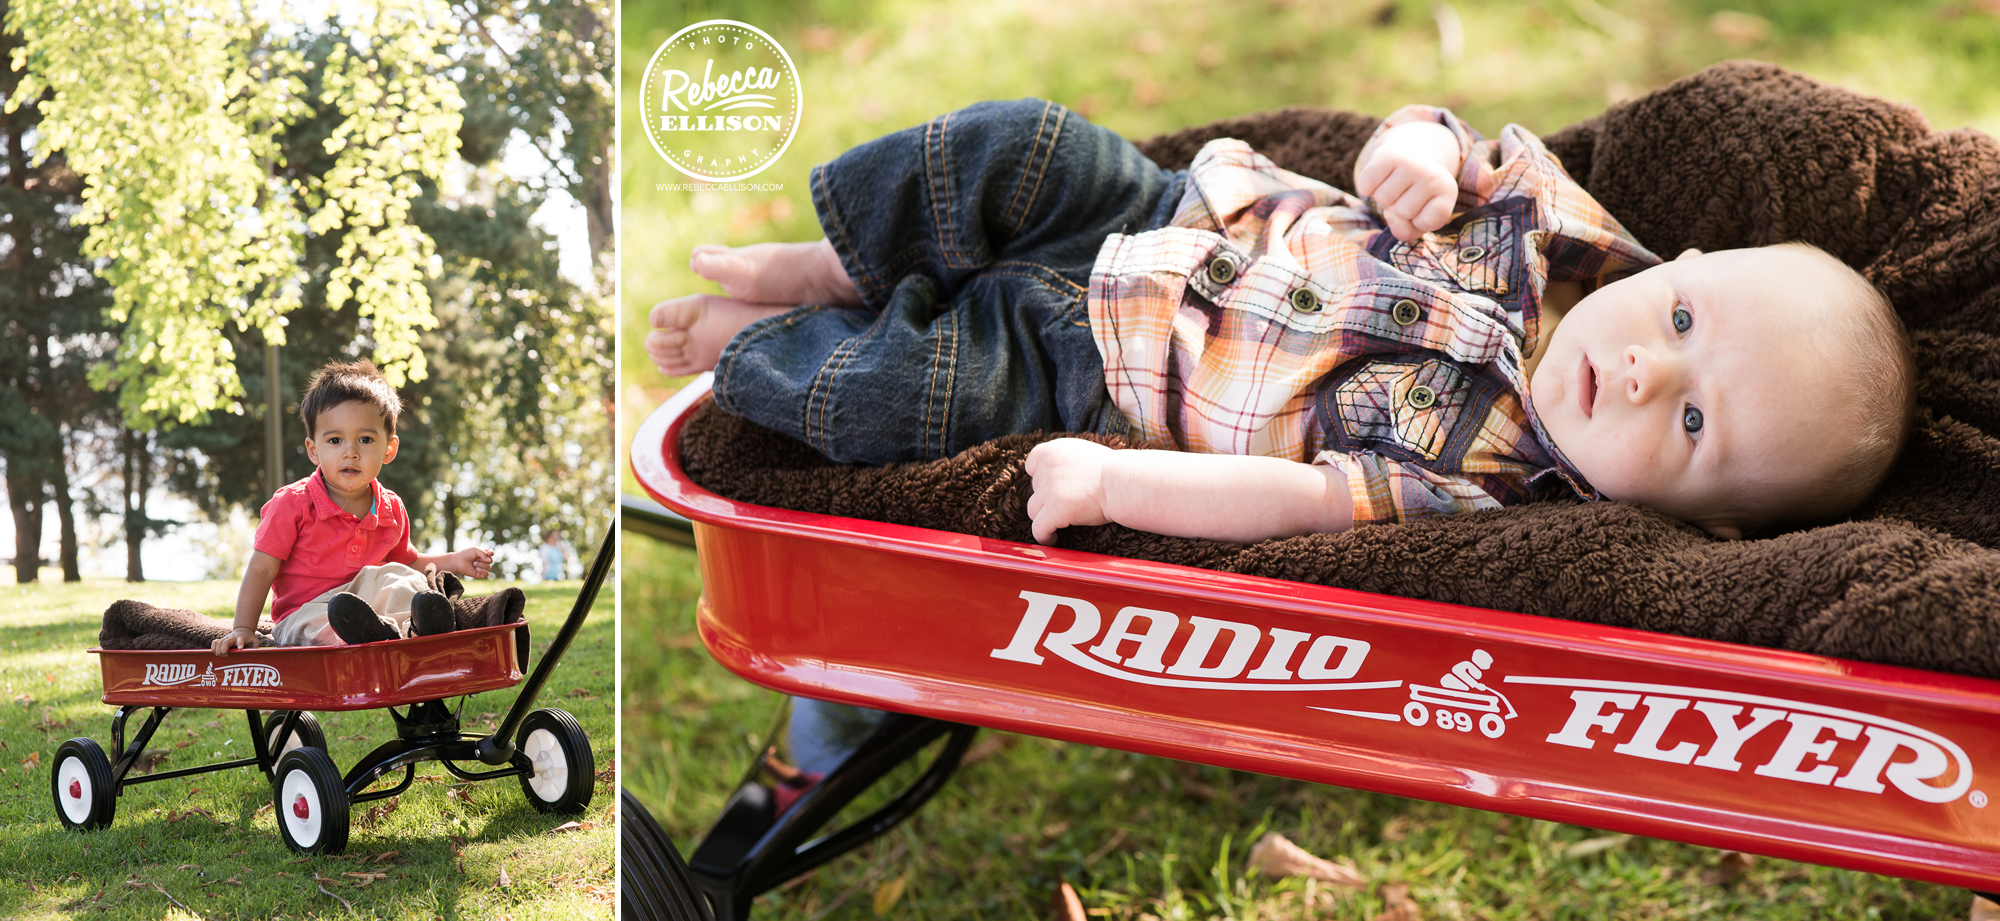 Cousins play in a Radio Flyer wagon during outdoor family portraits photographed by Rebecca Ellison Photography